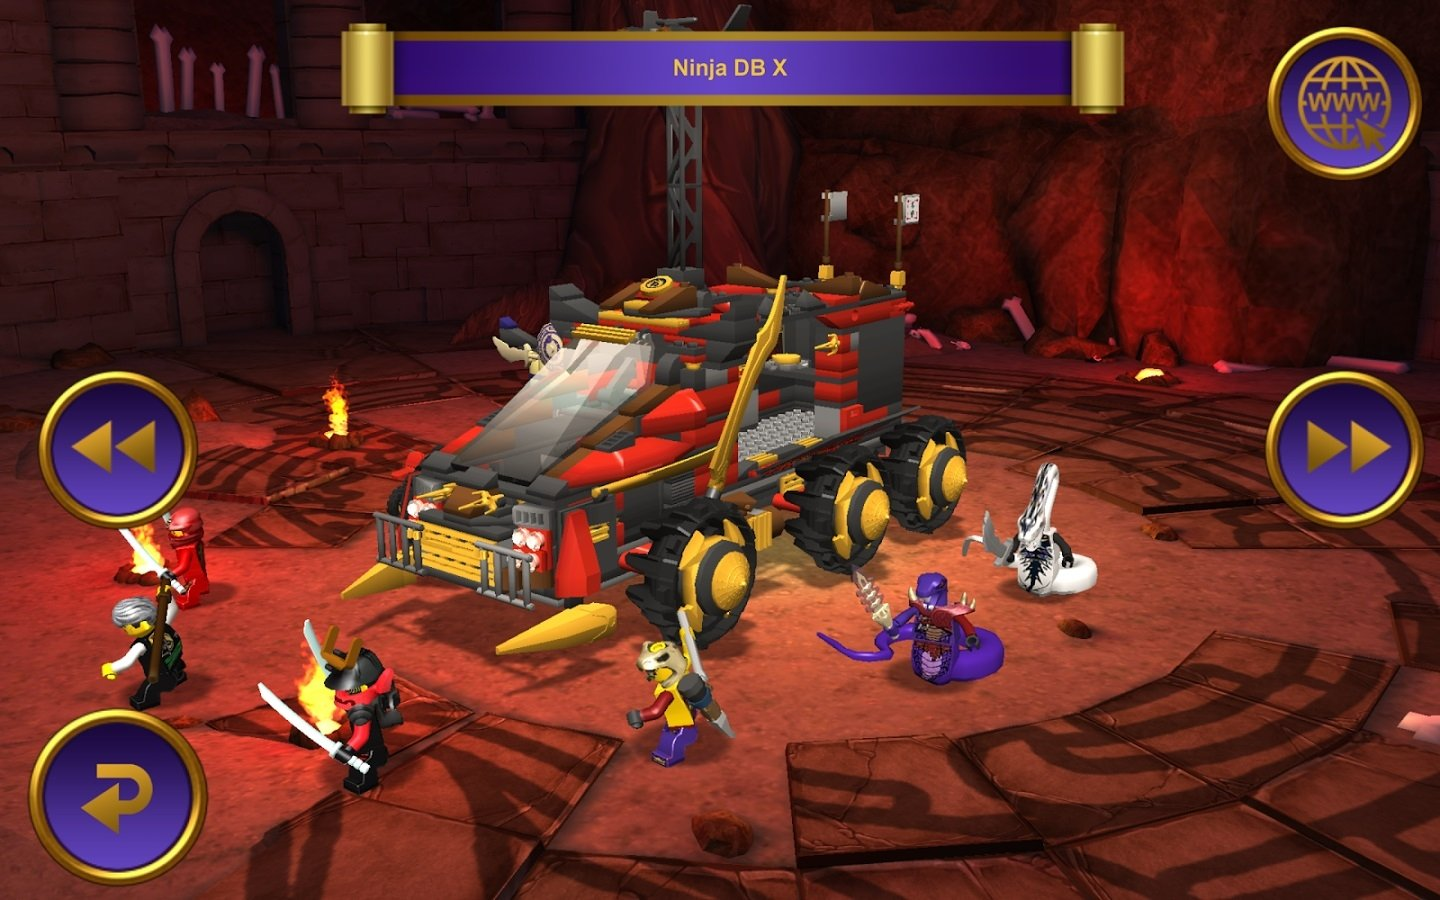 Lego Ninjago Tournament 1052970 Download For Android Apk Free